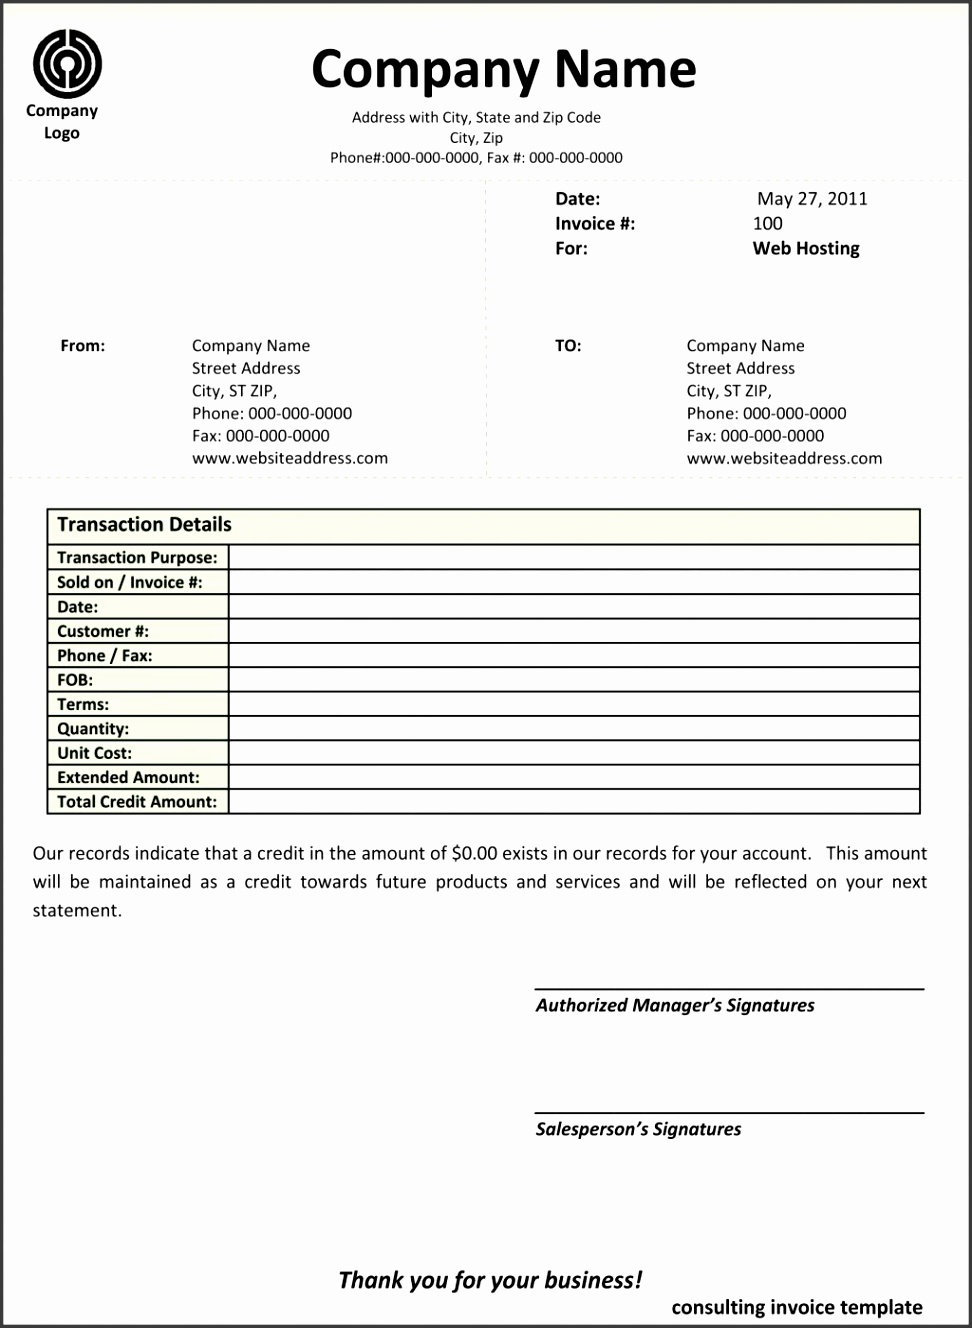 Business Invoice Templates View r